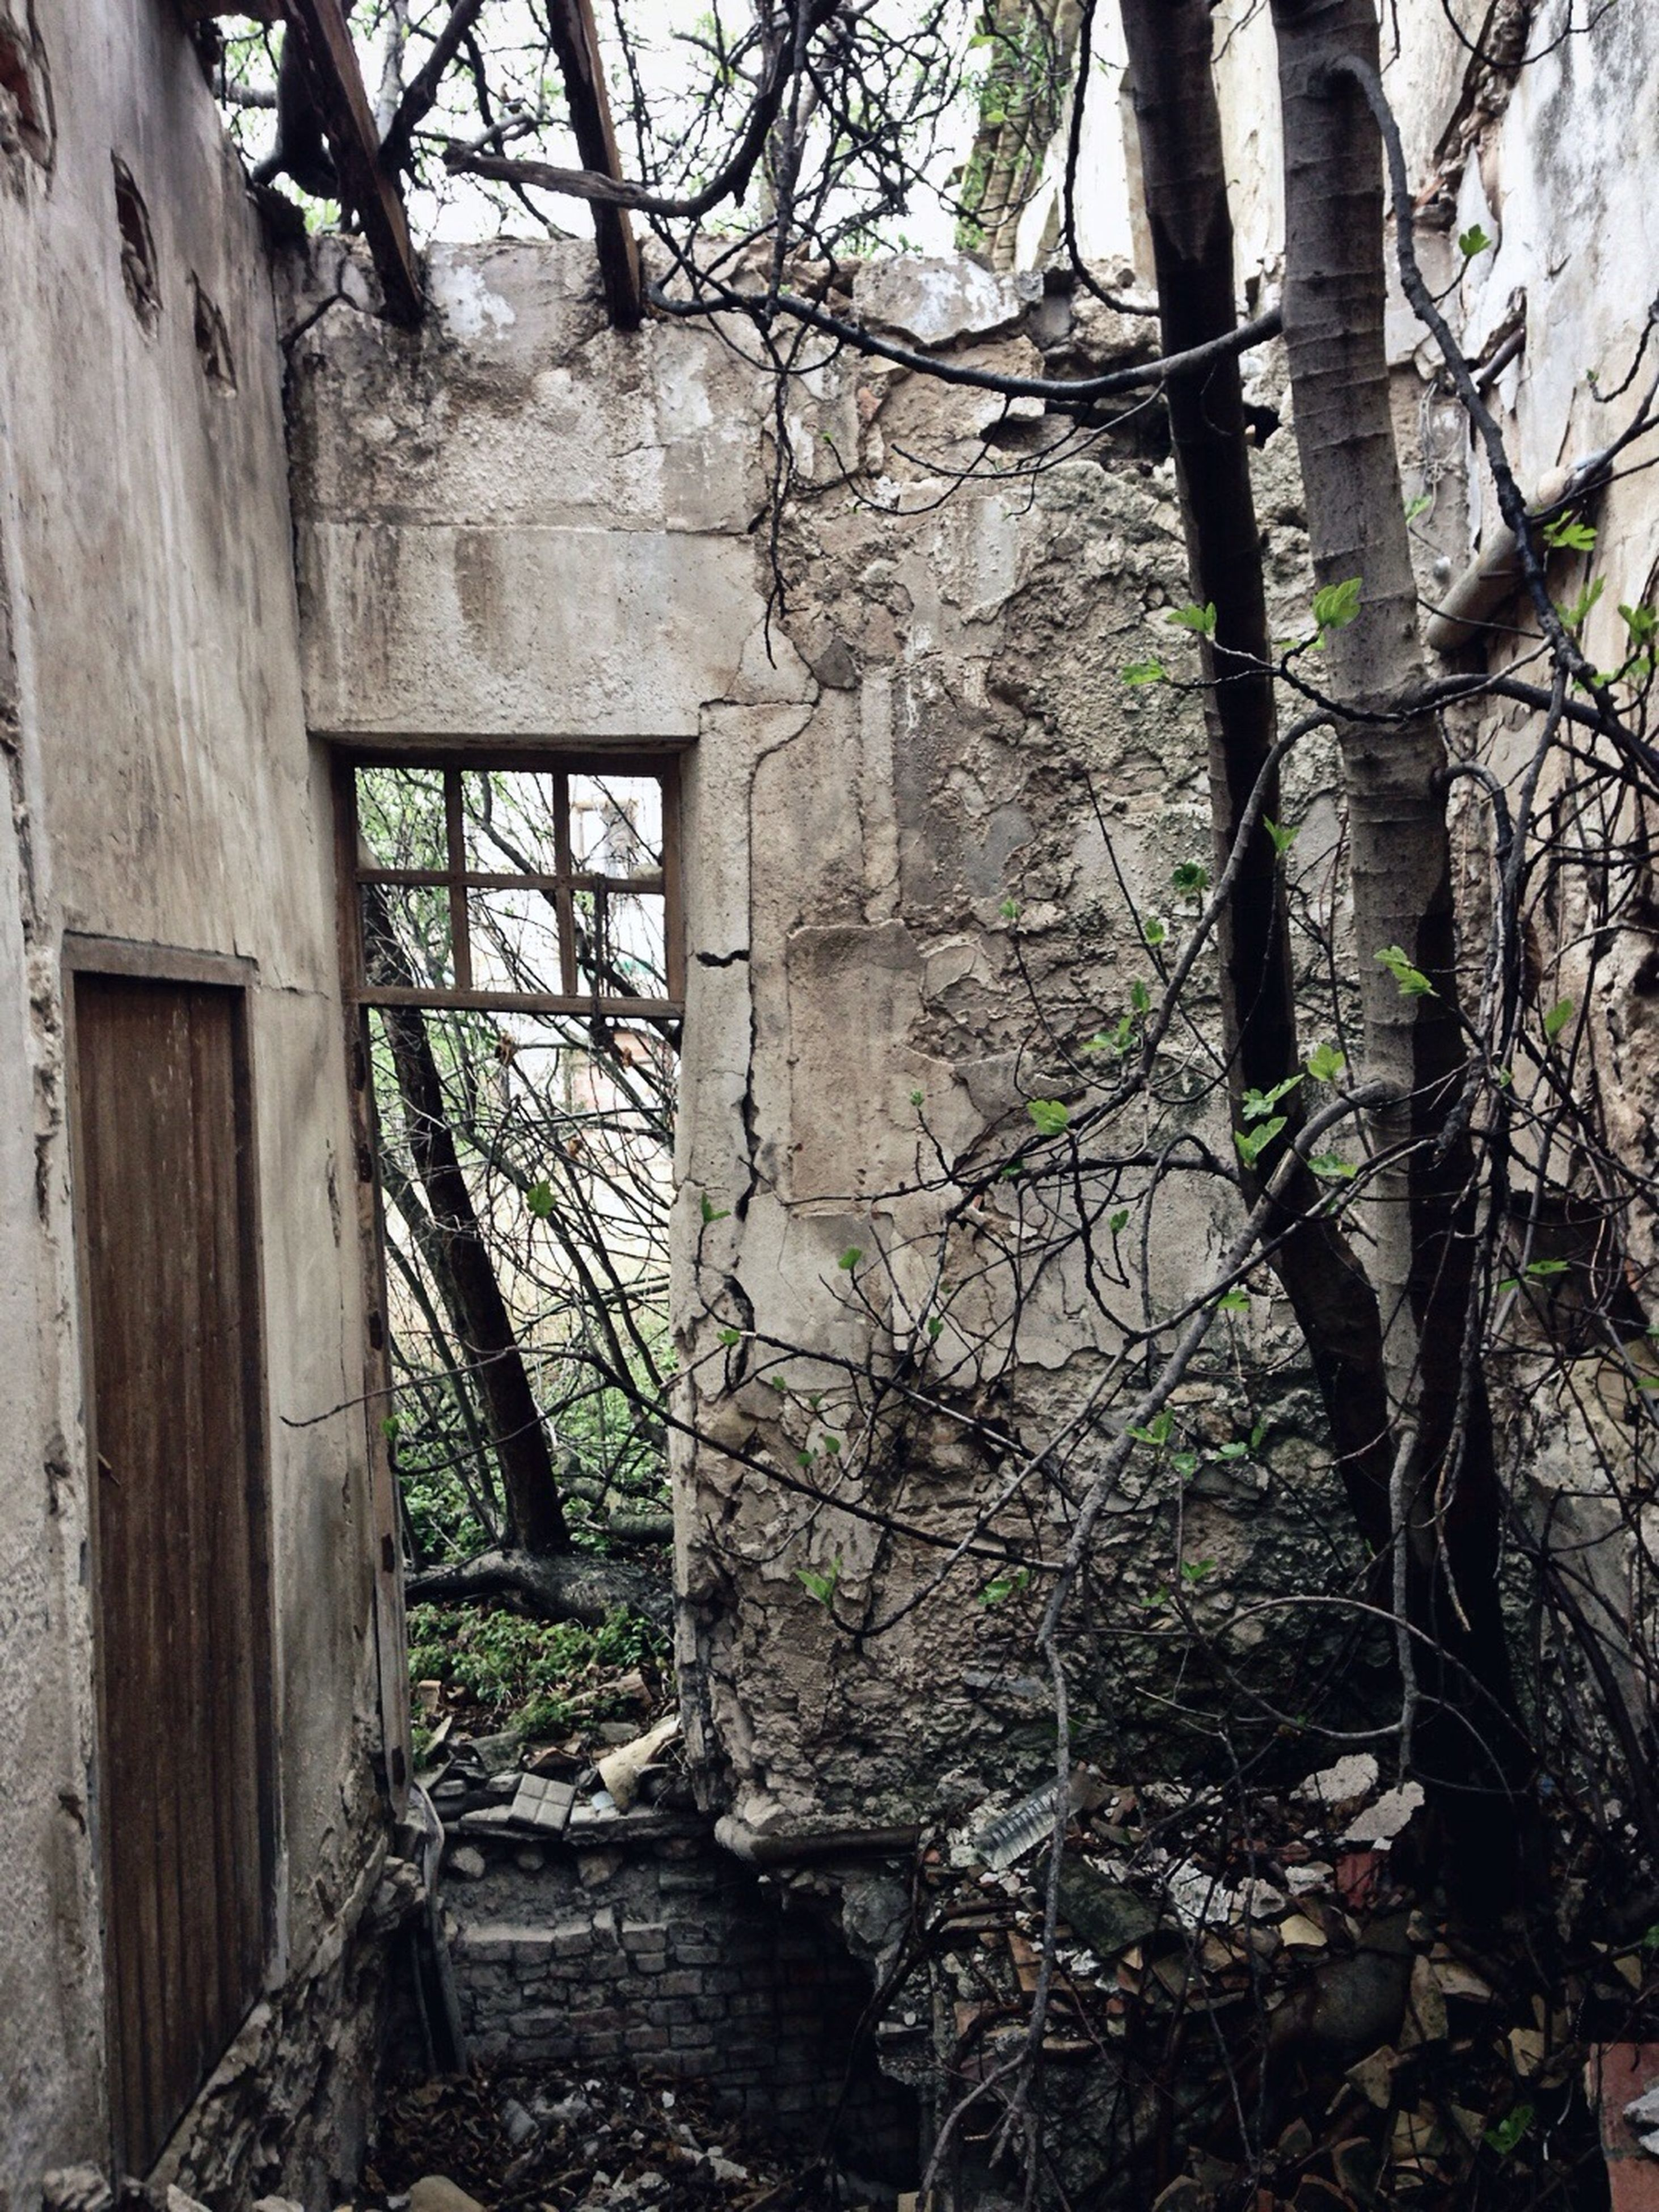 architecture, built structure, building exterior, tree, house, plant, abandoned, growth, branch, tree trunk, old, window, ivy, damaged, wall - building feature, day, no people, weathered, wood - material, residential structure